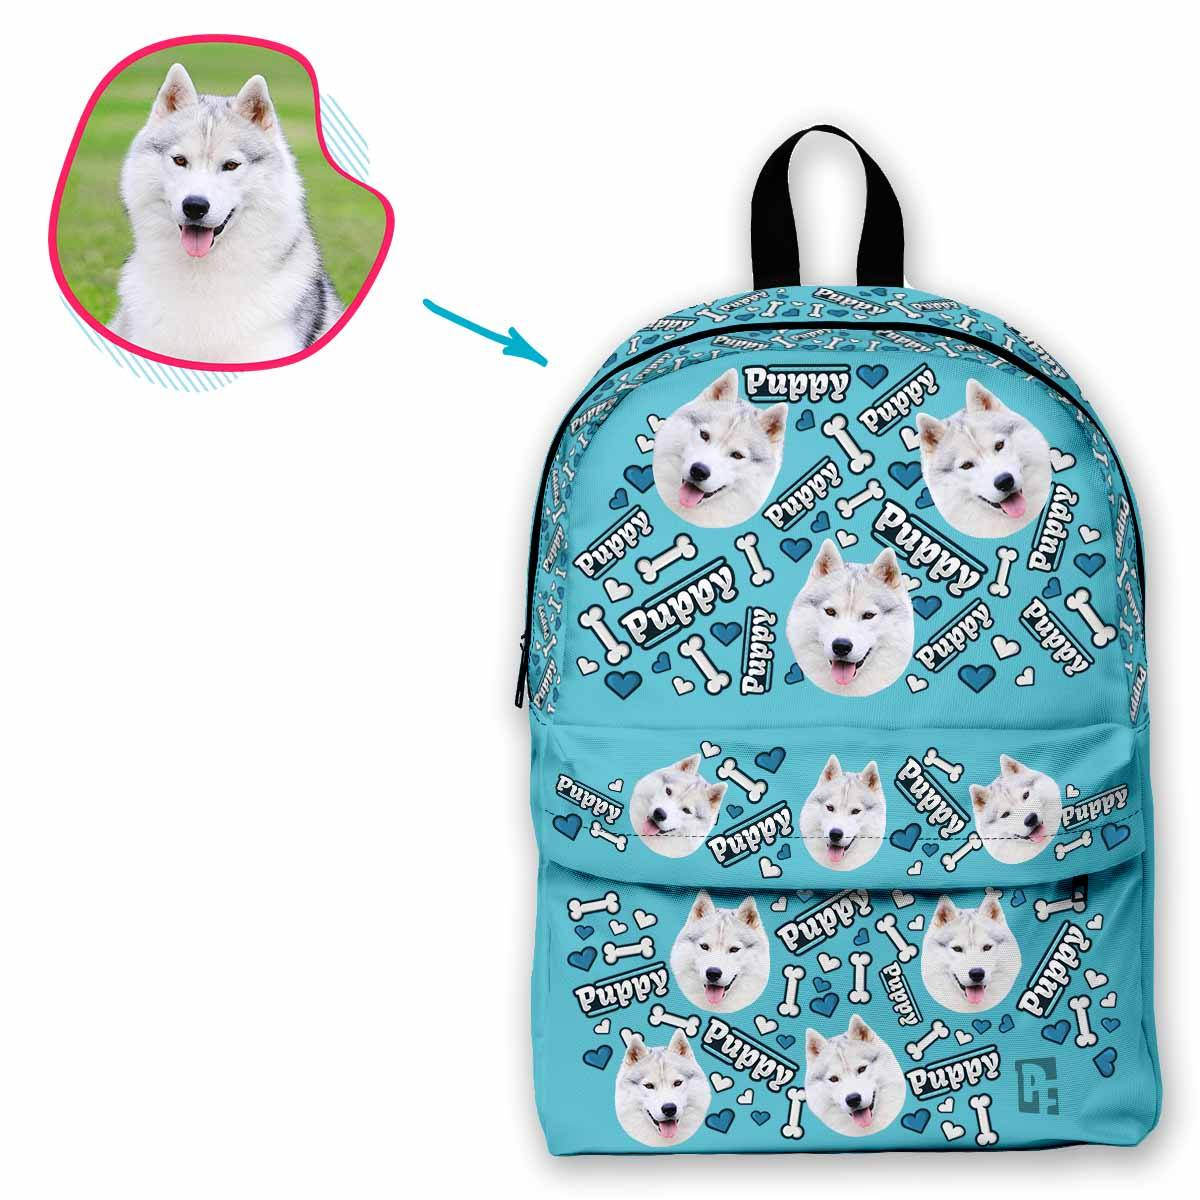 blue Puppy classic backpack personalized with photo of face printed on it